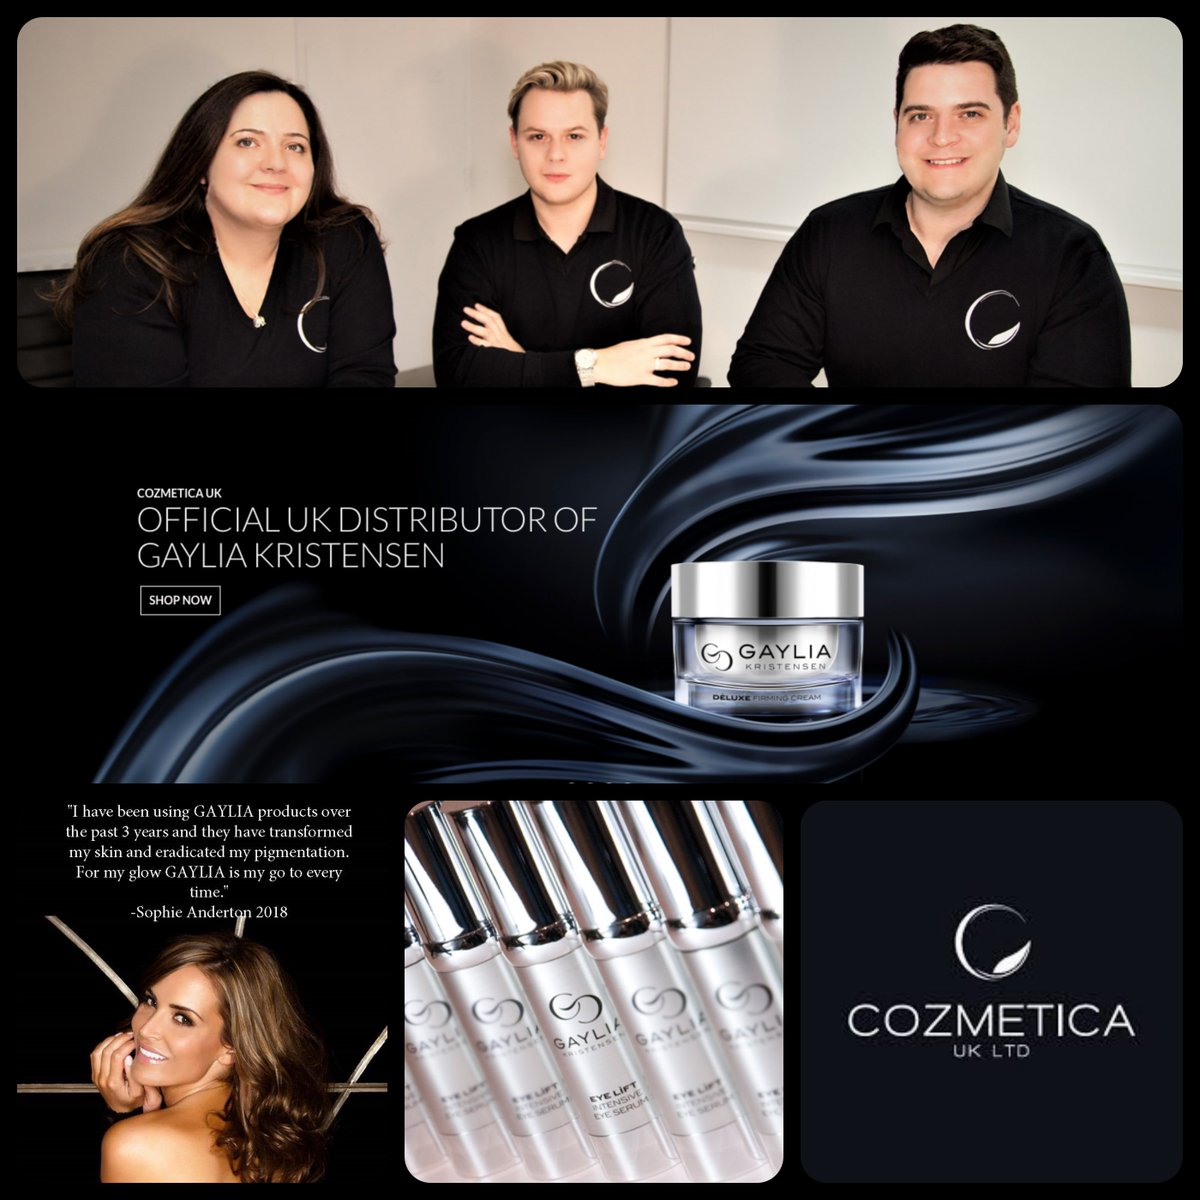 A huge welcome to #Cozmetica UK; a dynamic #brands #distribution partner who are dedicated to better-servicing the needs of #luxury #spas, #aesthetics #clinics, #salons & #premium #retailers with unique & niche cosmetic products including #GayliaKristensen